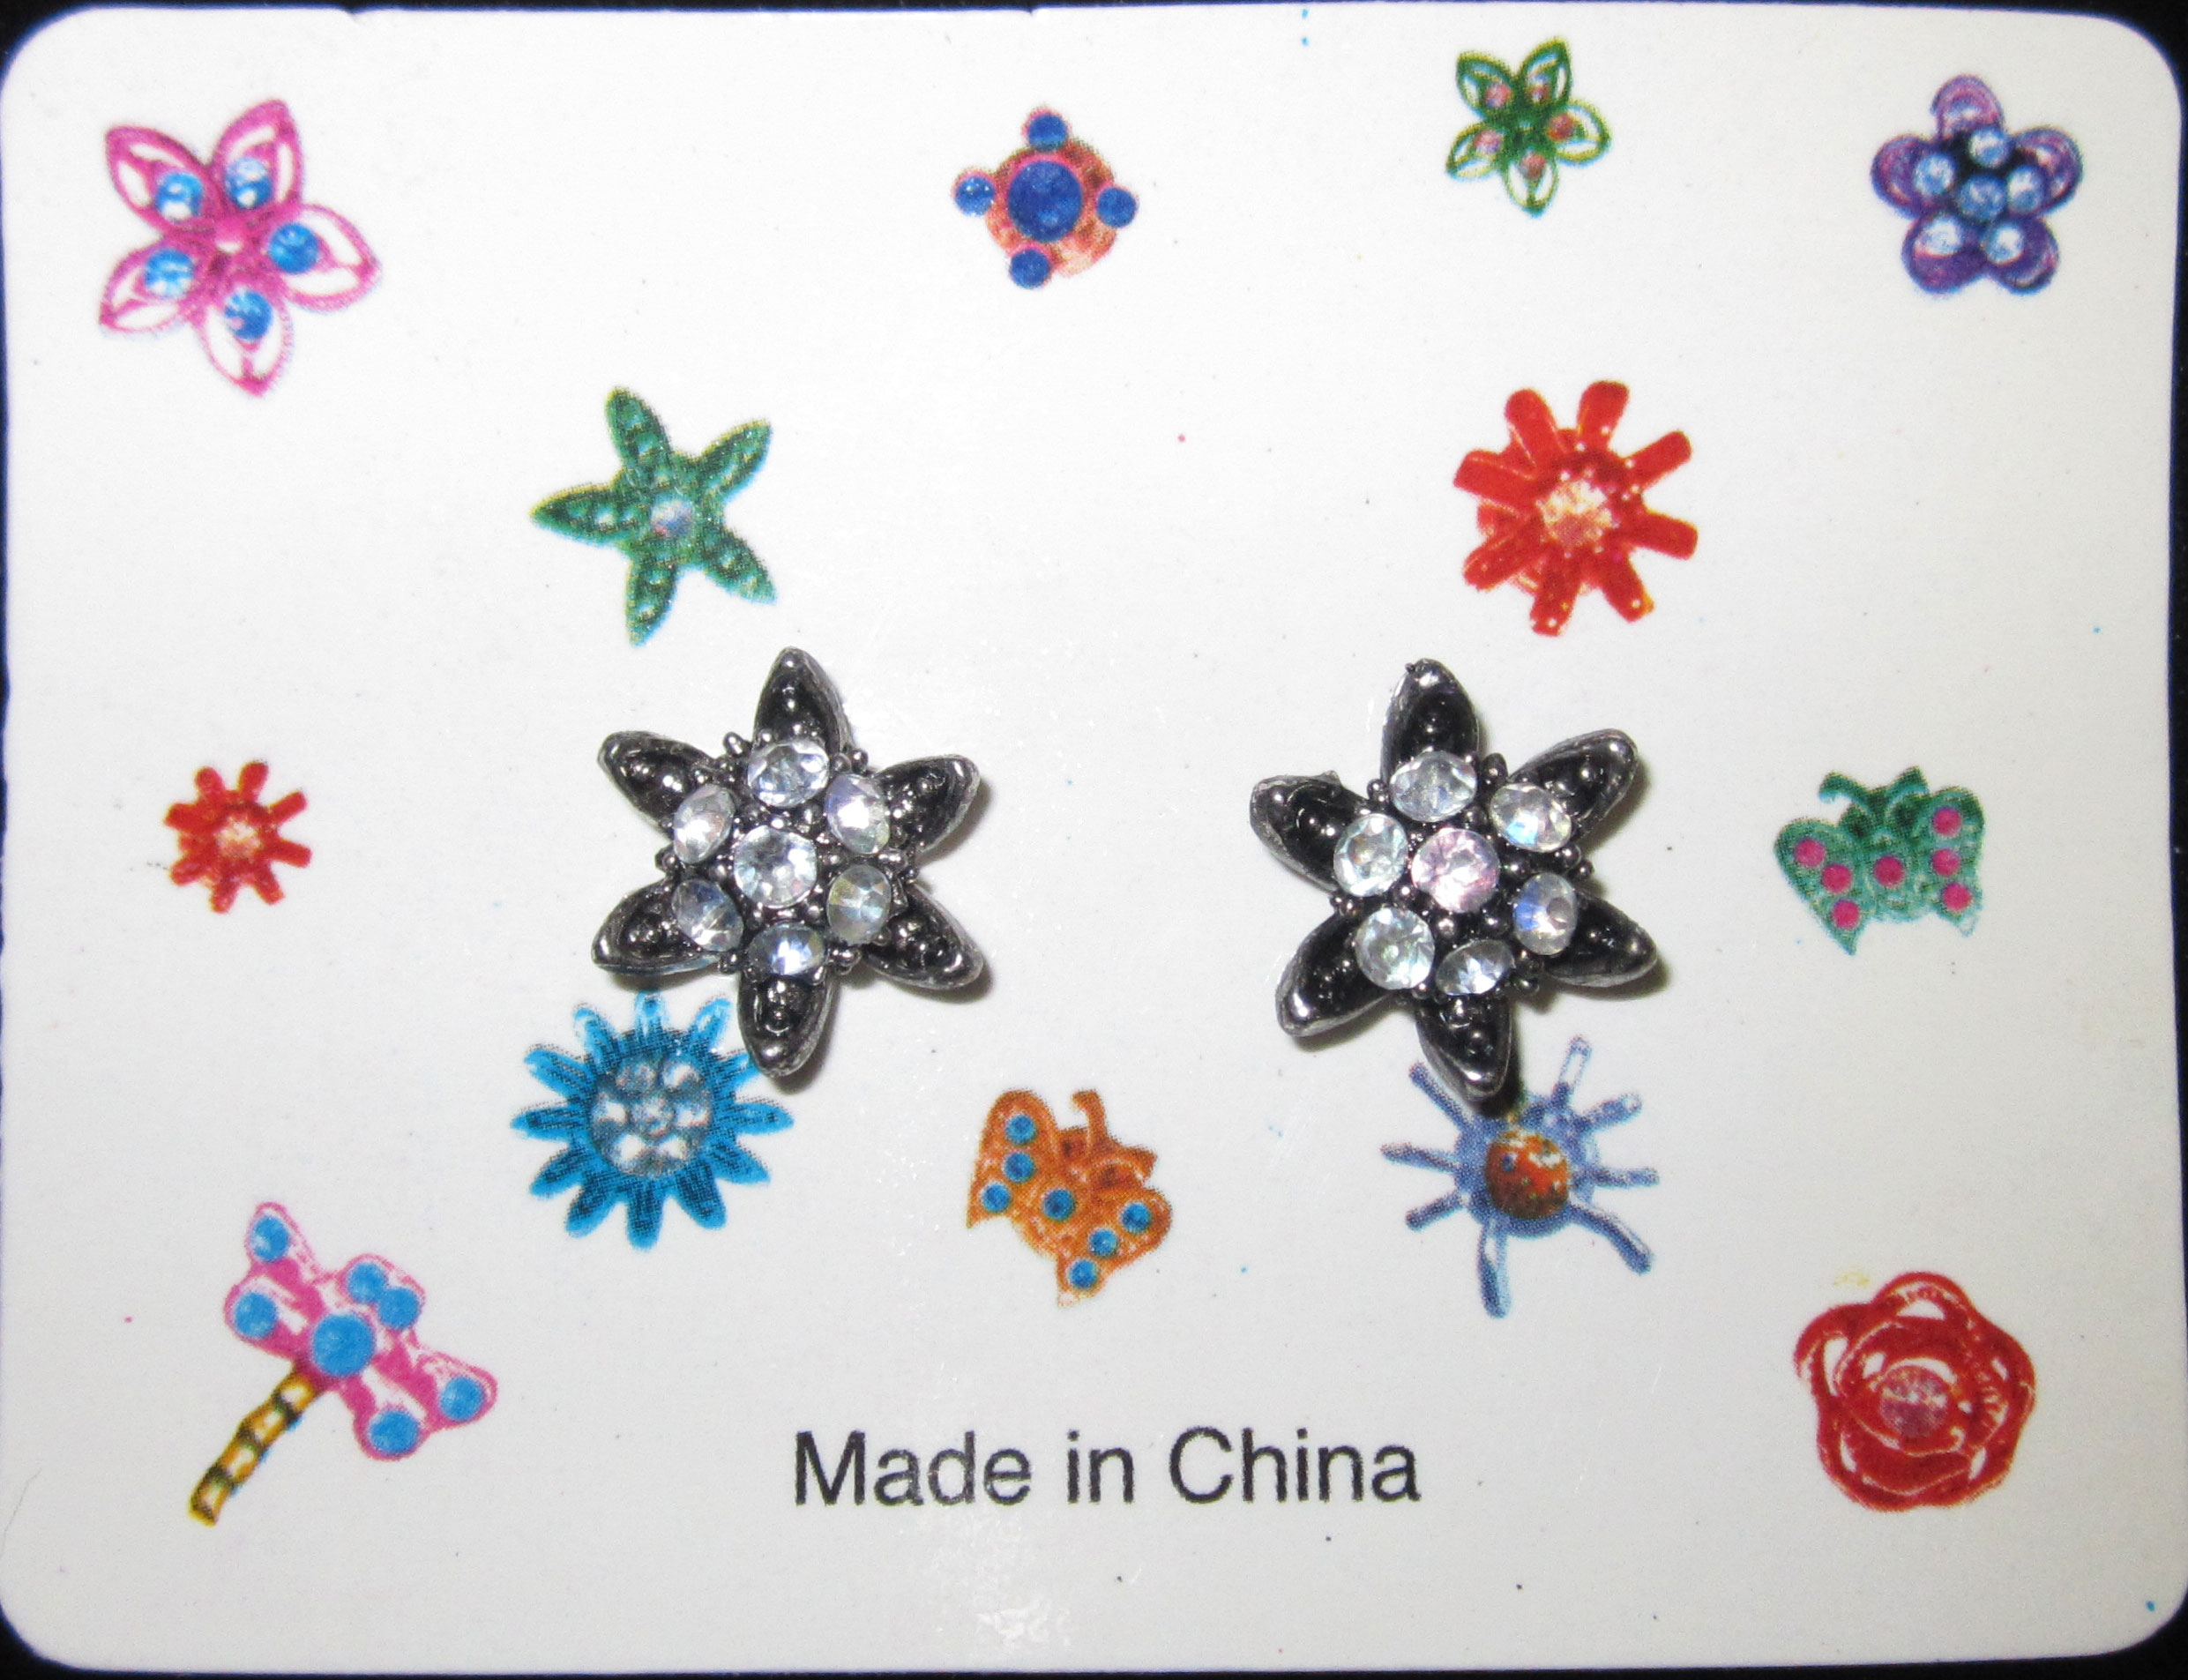 Floral Metal Hair Snap Button w/Clear Gems, 24Pcs/Order